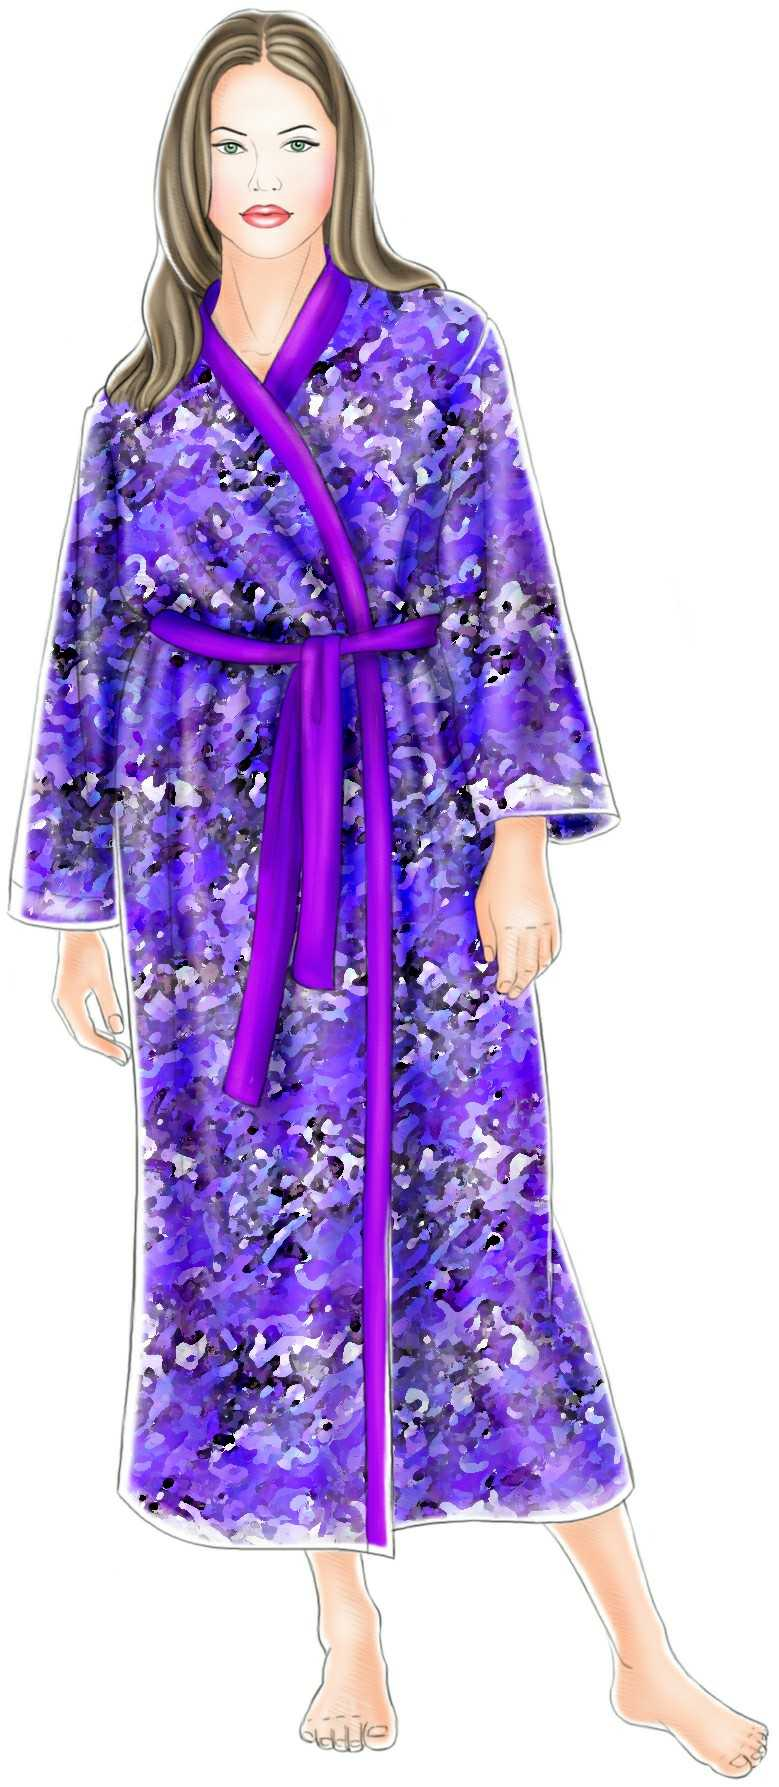 Kimono gown sewing pattern 5257 made to measure sewing pattern kimono gown sewing pattern 5257 jeuxipadfo Gallery